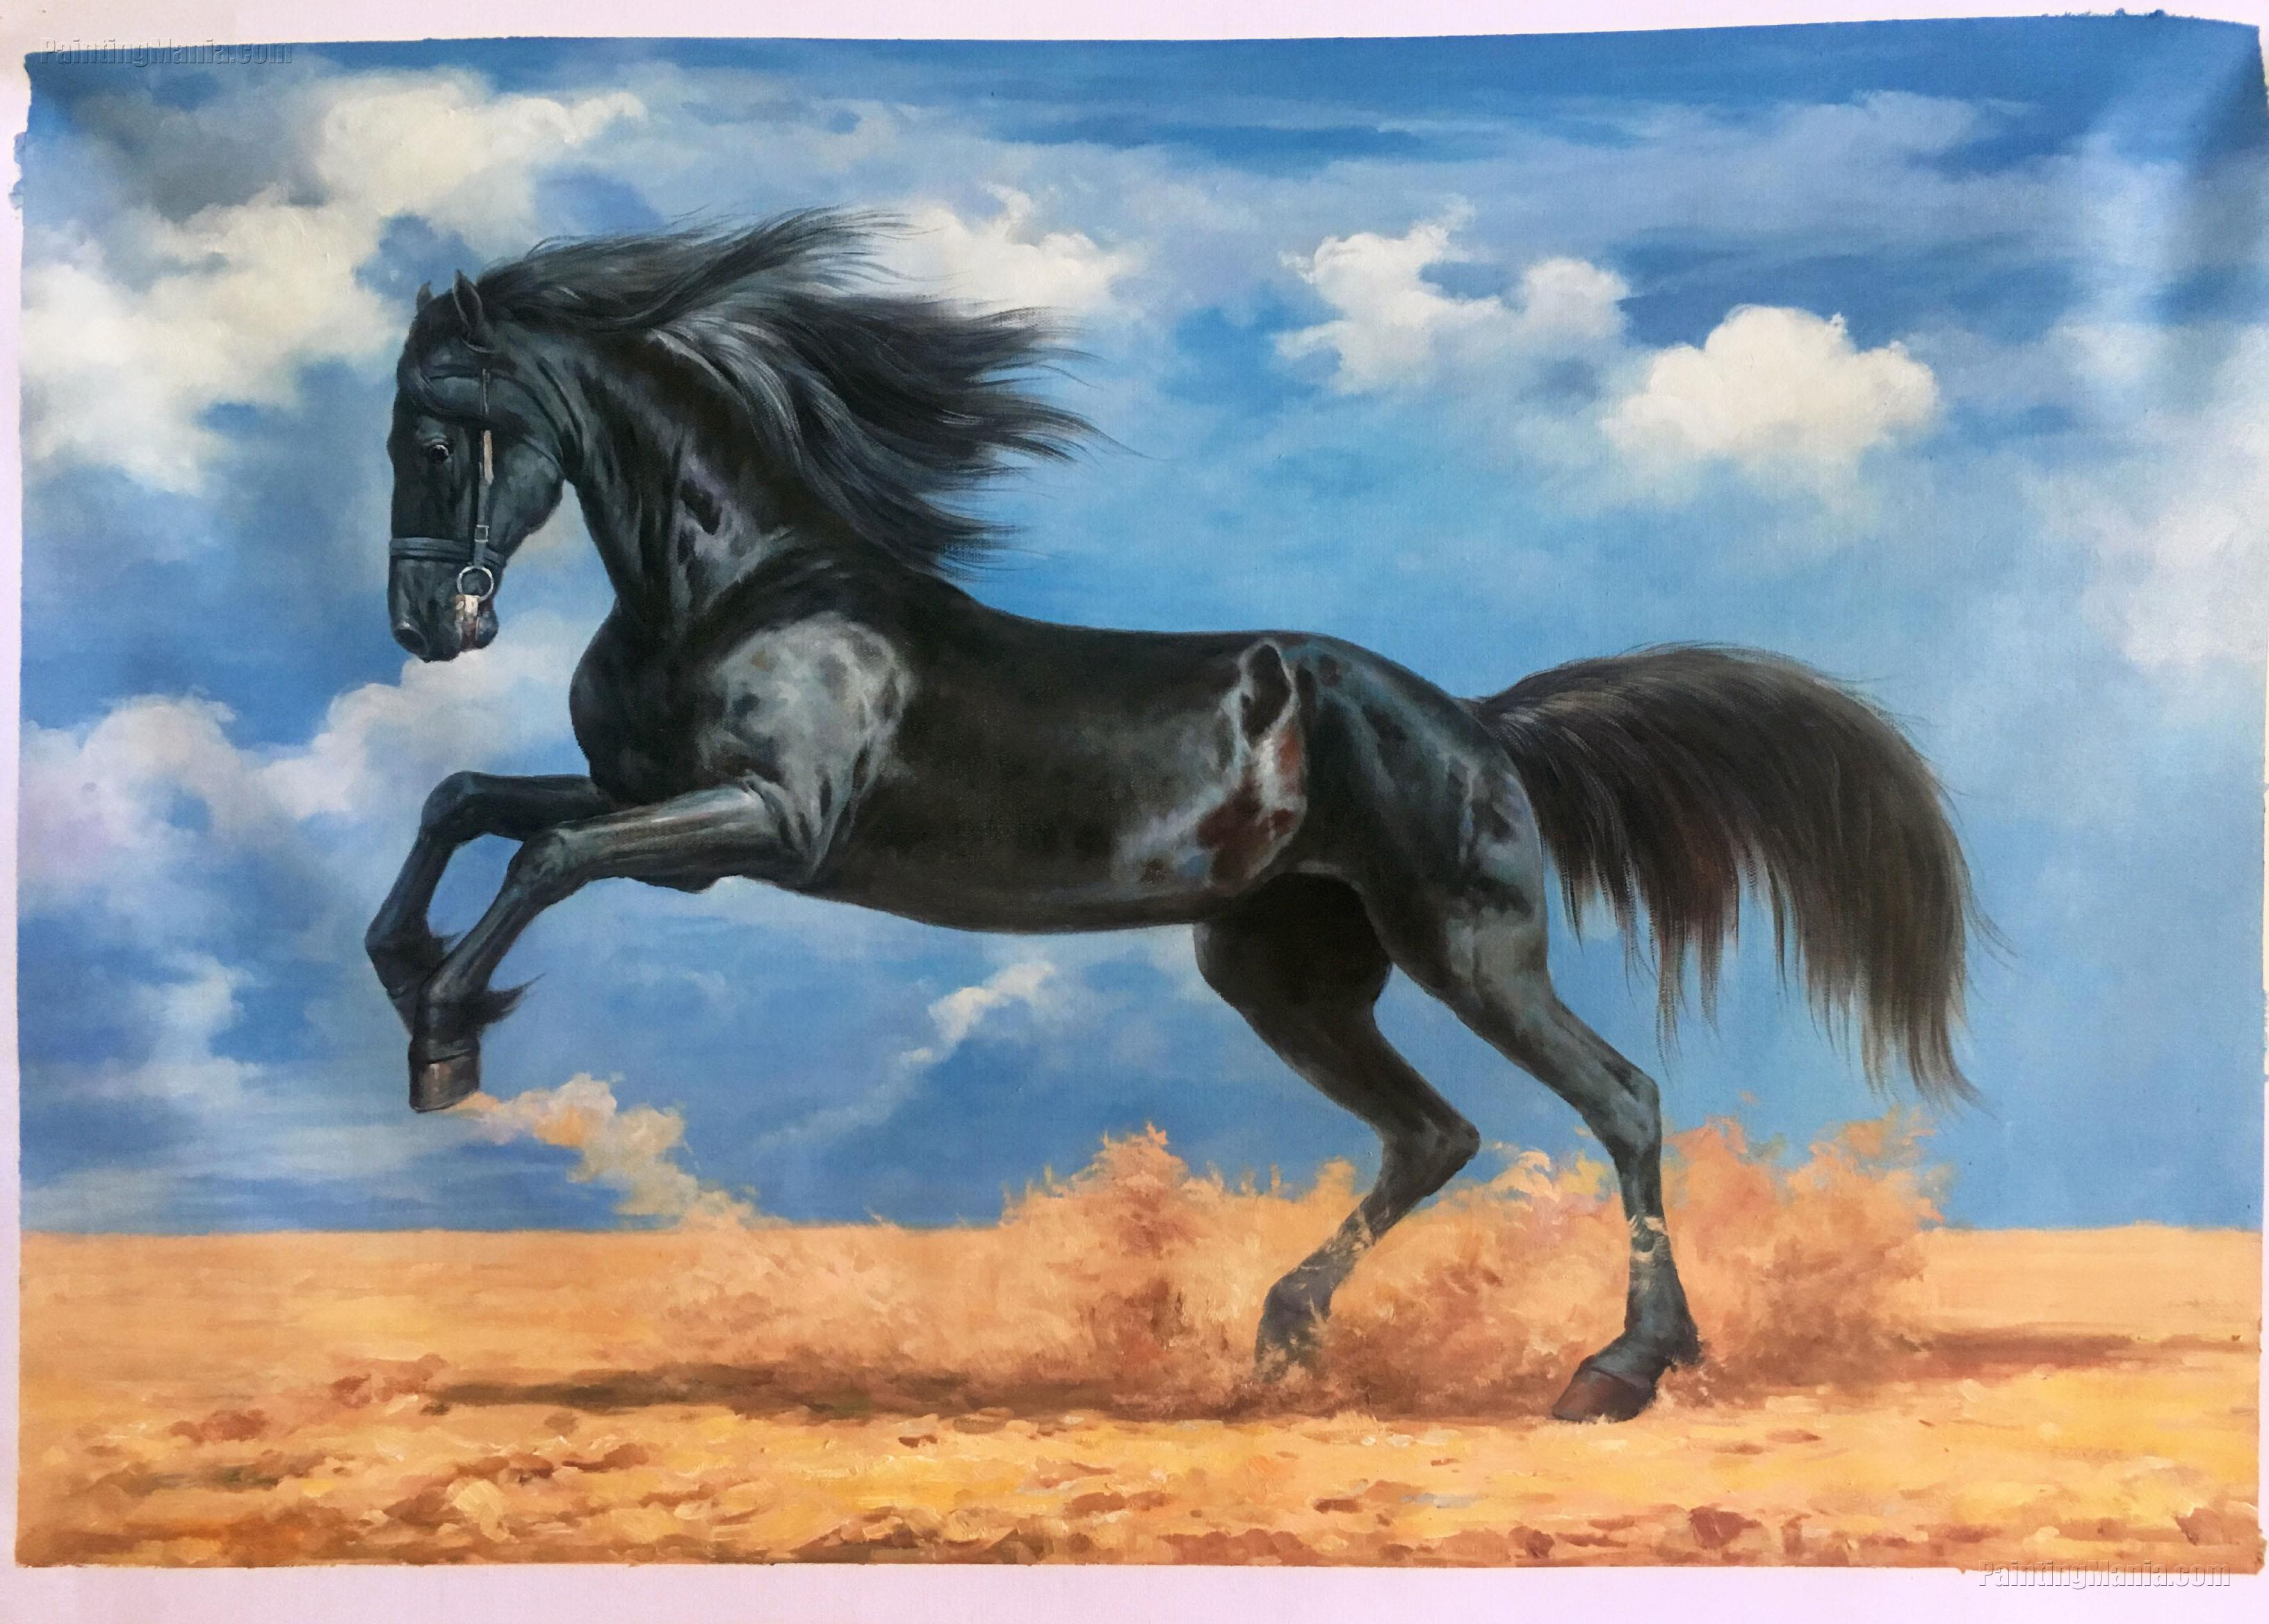 Galloping Black Horse on the Plains